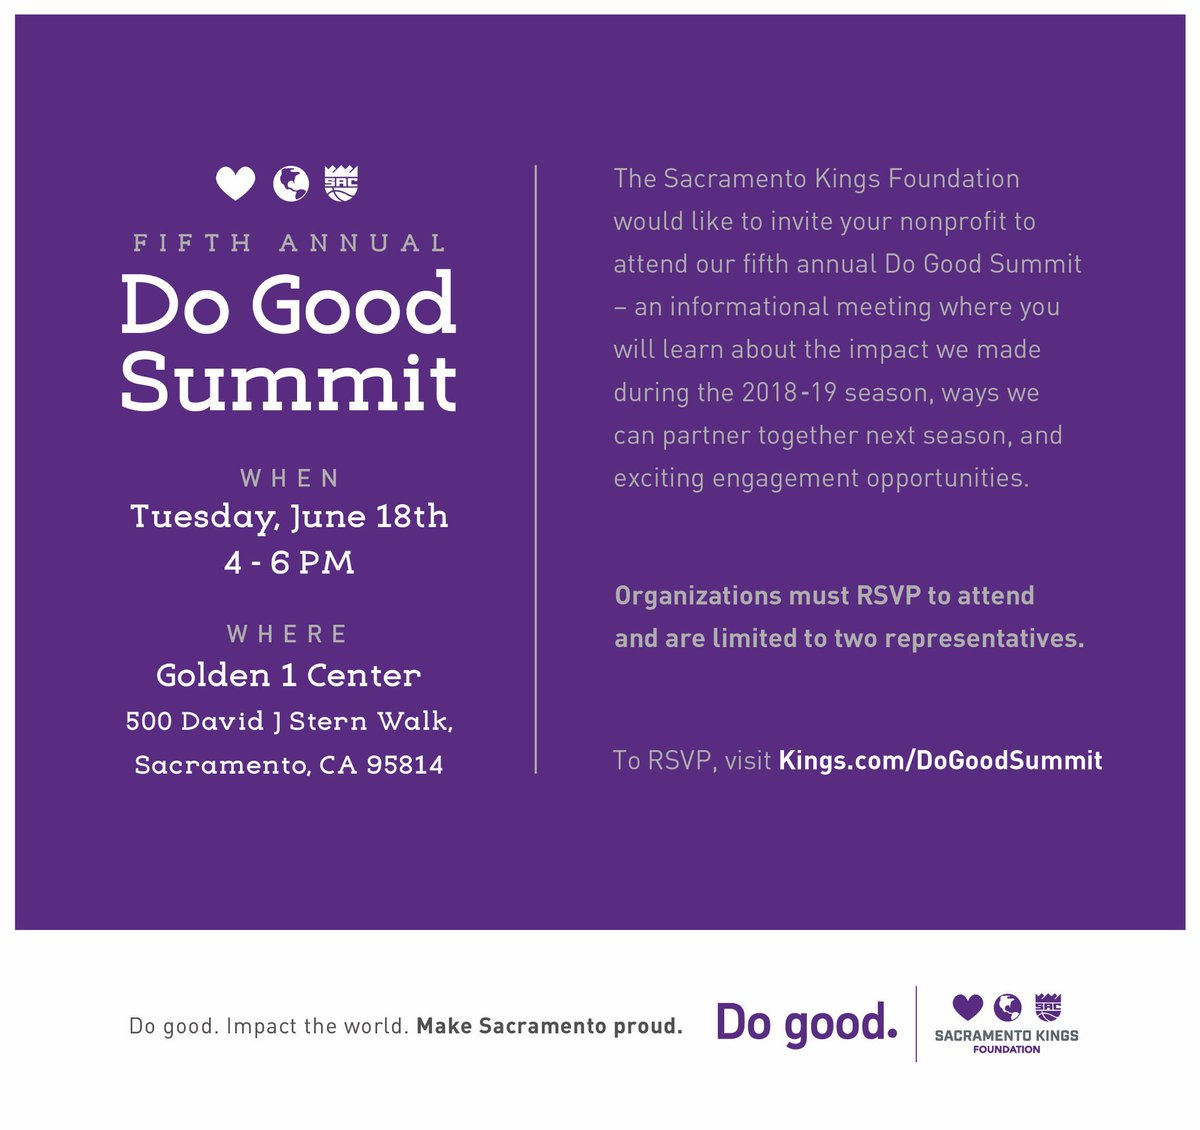 Hey, nonprofit friends! Join us on June 18th to learn about how we can #dogood together during the upcoming 2019-2020 season! RSVP here: http://Kings.com/DoGoodSummit